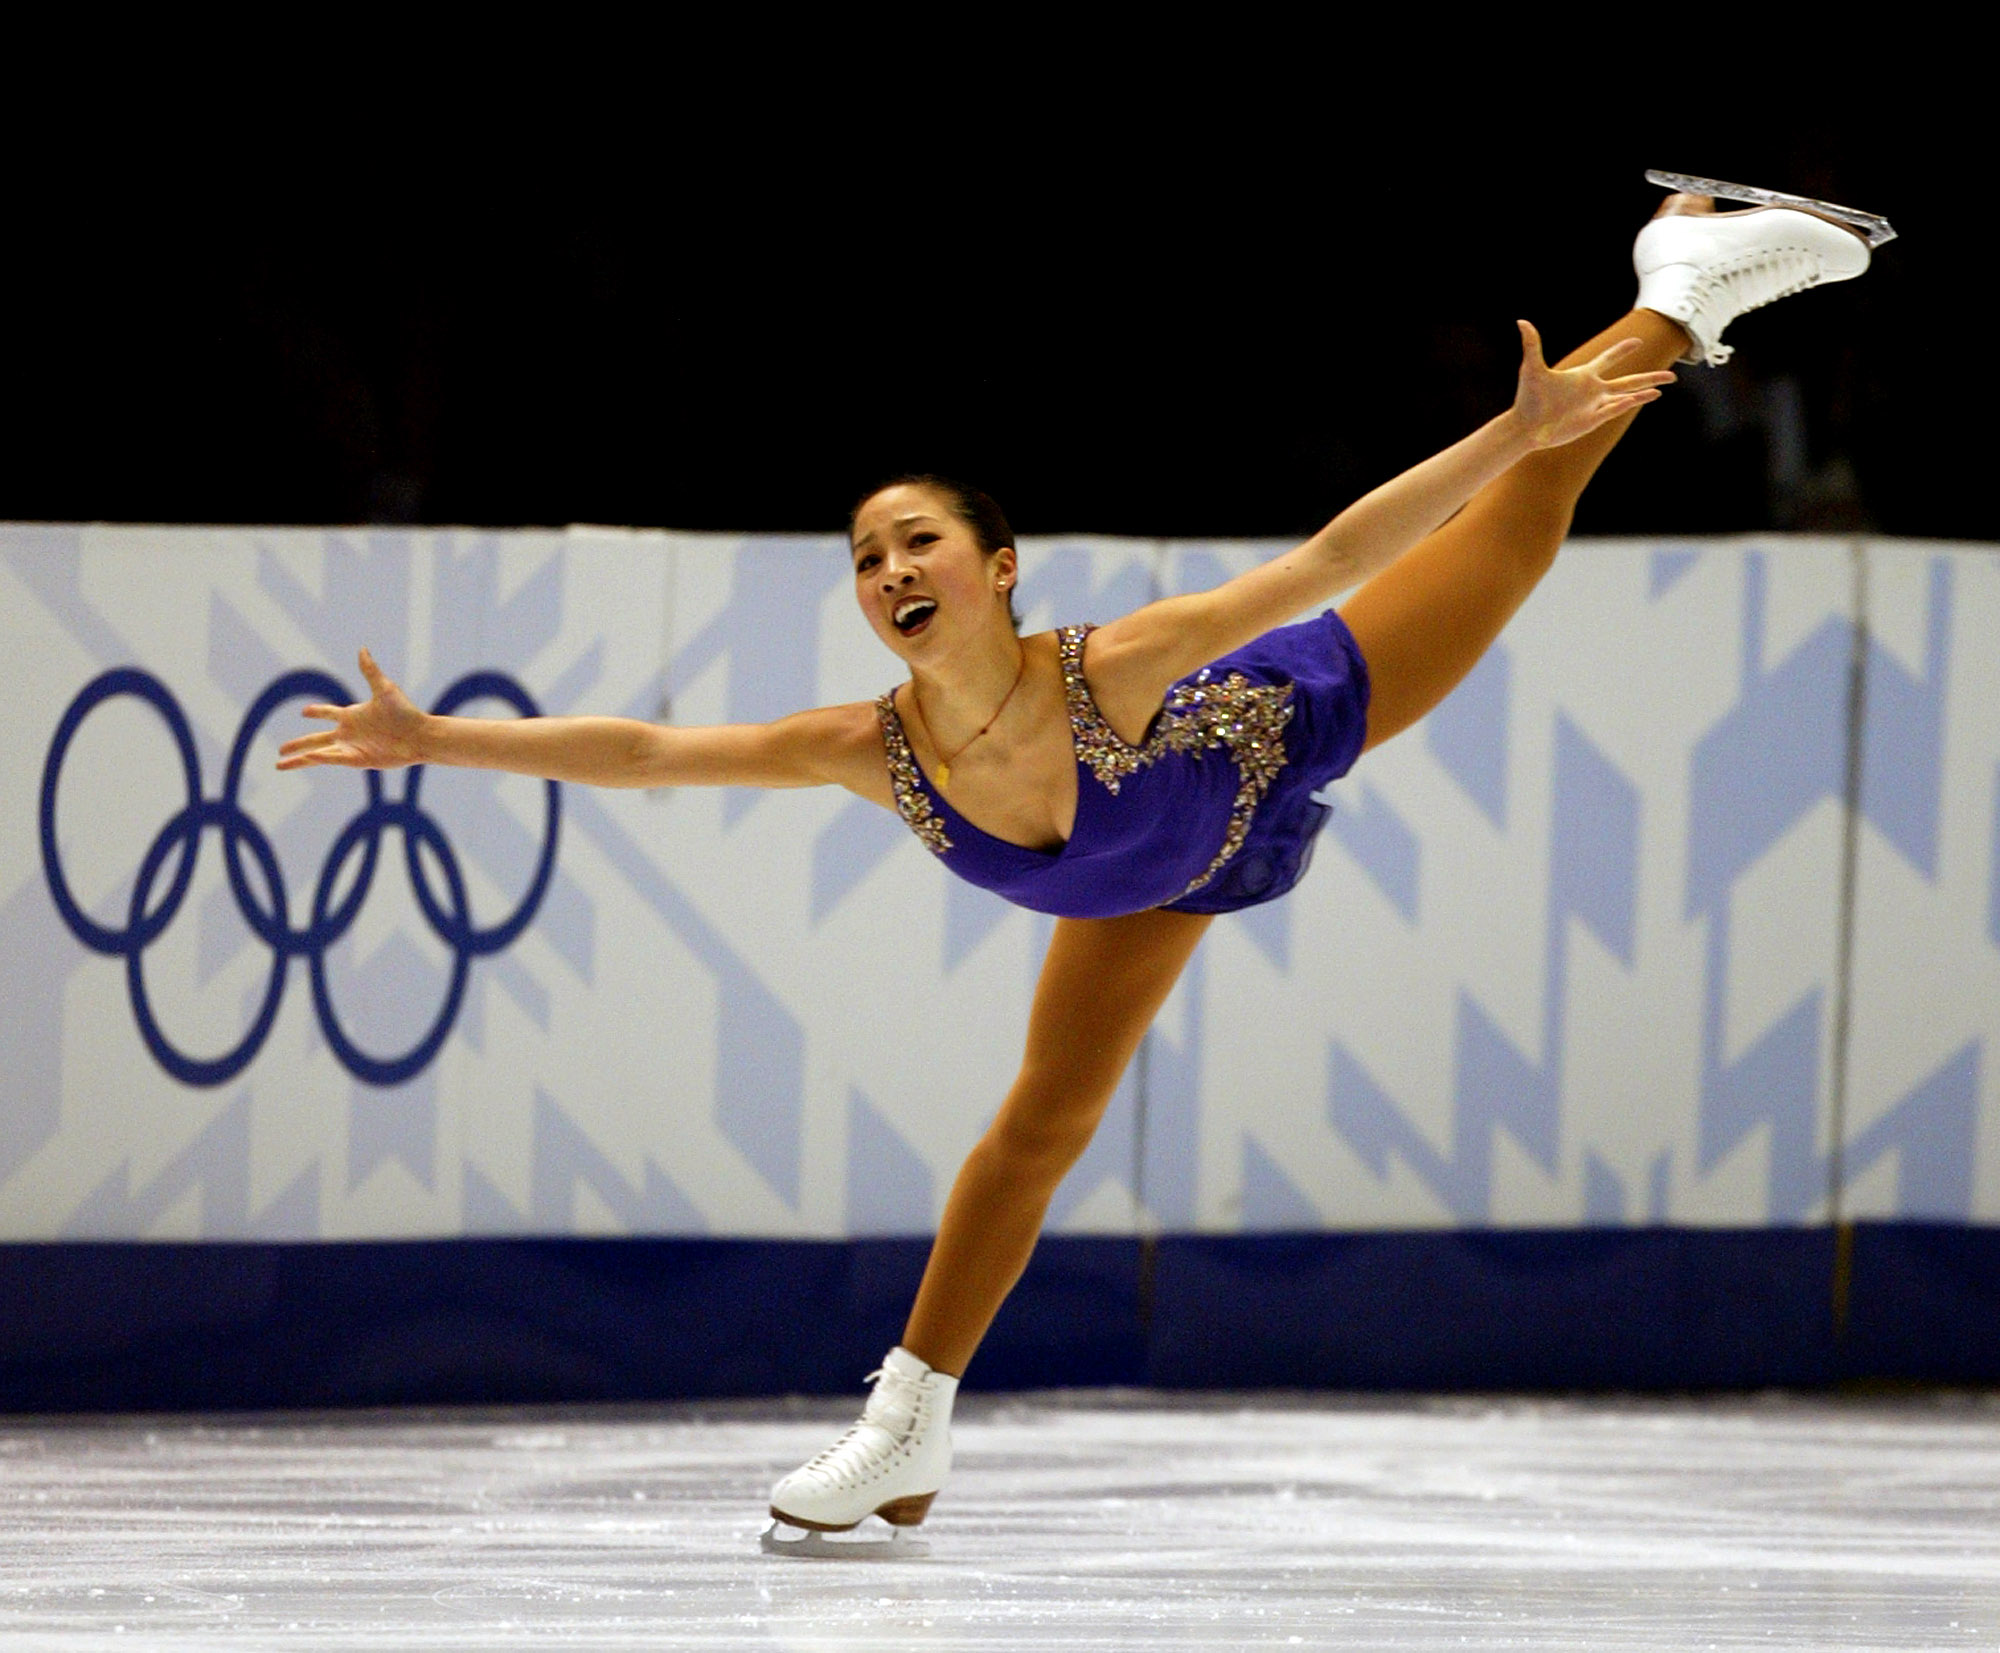 Michelle Kwan competing in the Ladies' Short Program at the 2002 Olympic Games.